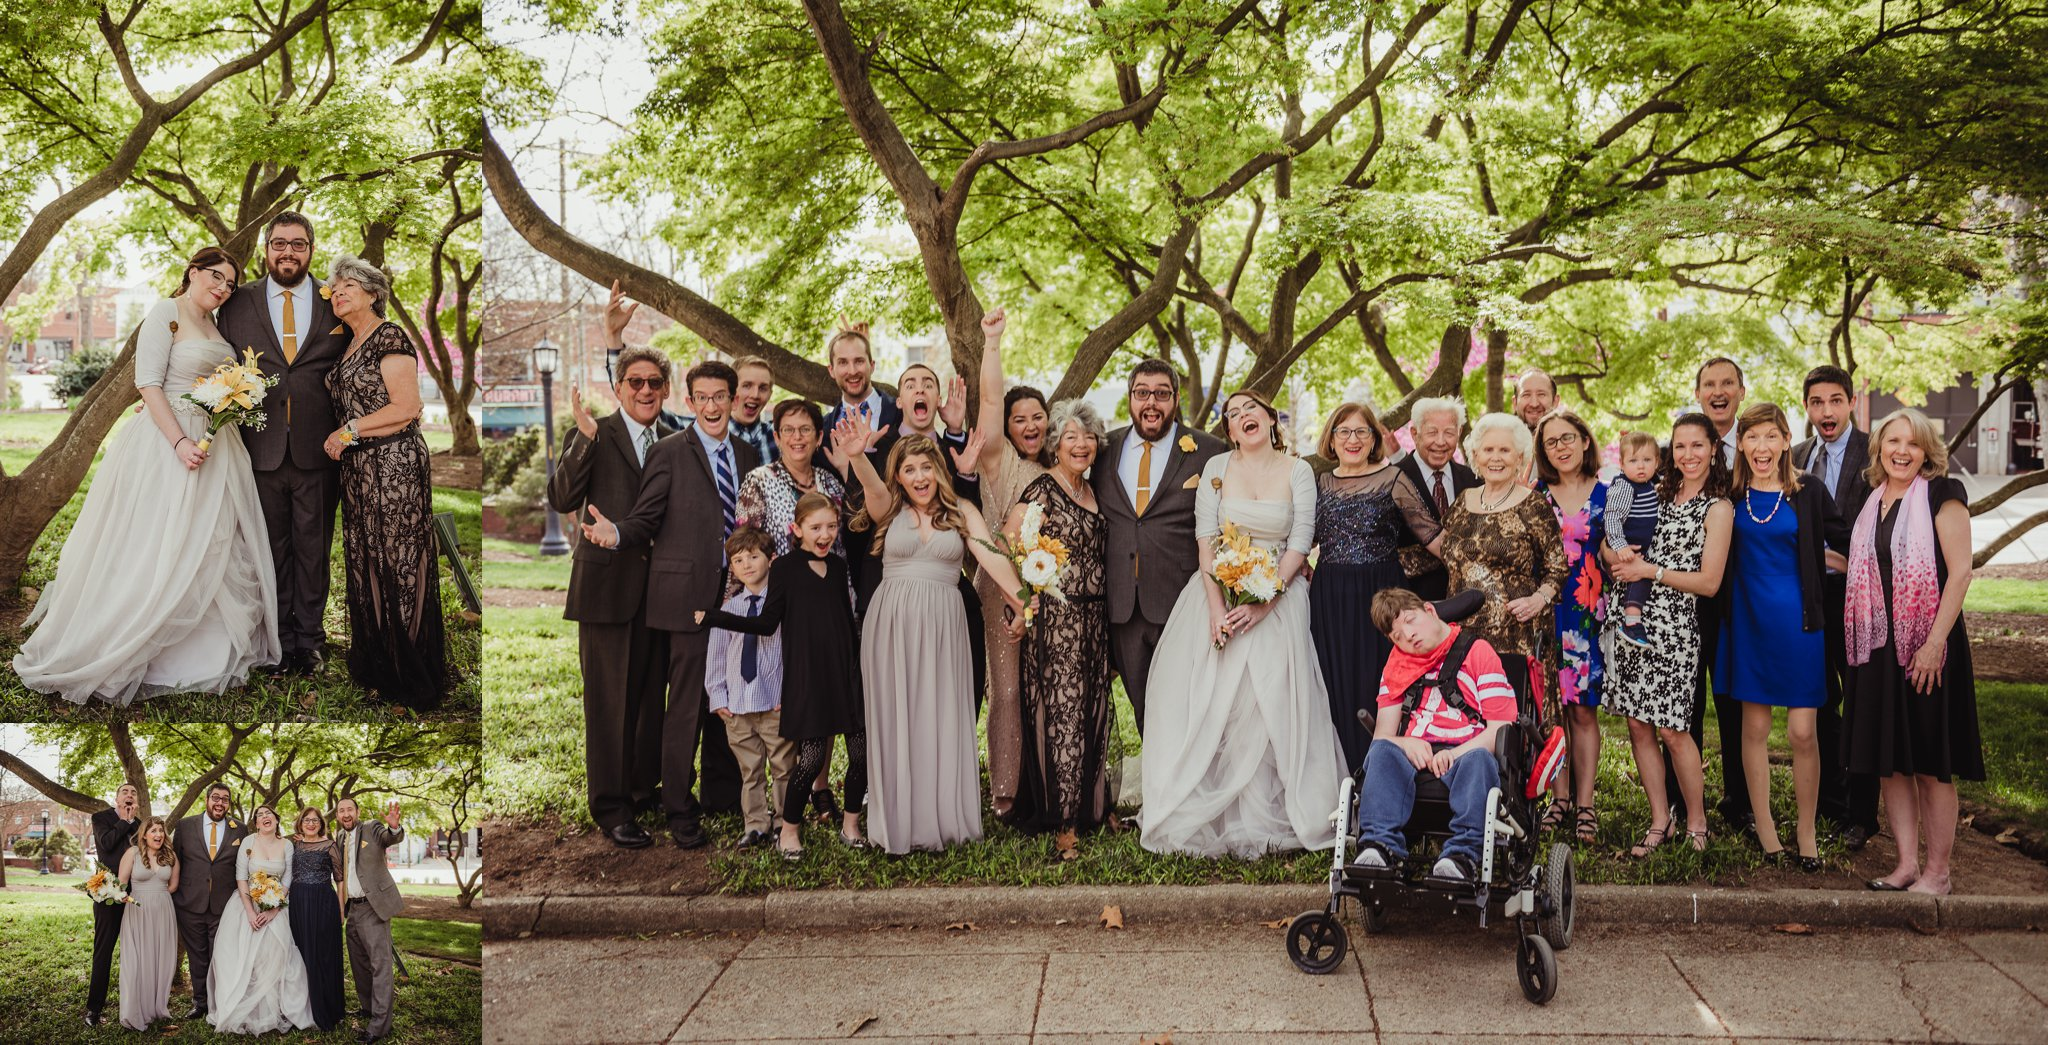 The bride and groom pose with family in the park before their wedding day in downtown Raleigh, picture by Rose Trail Images.